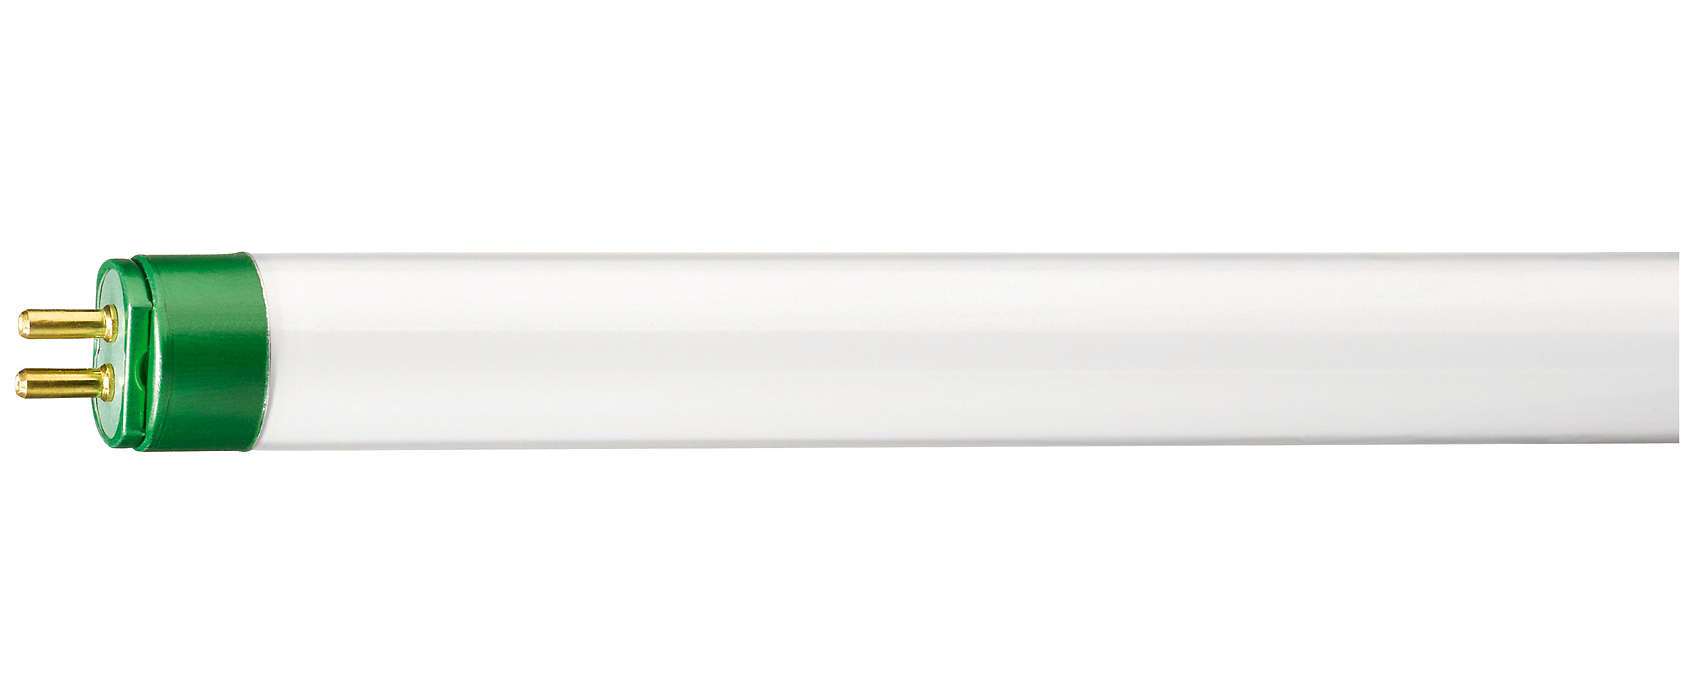 The world's most efficient fluorescent lighting